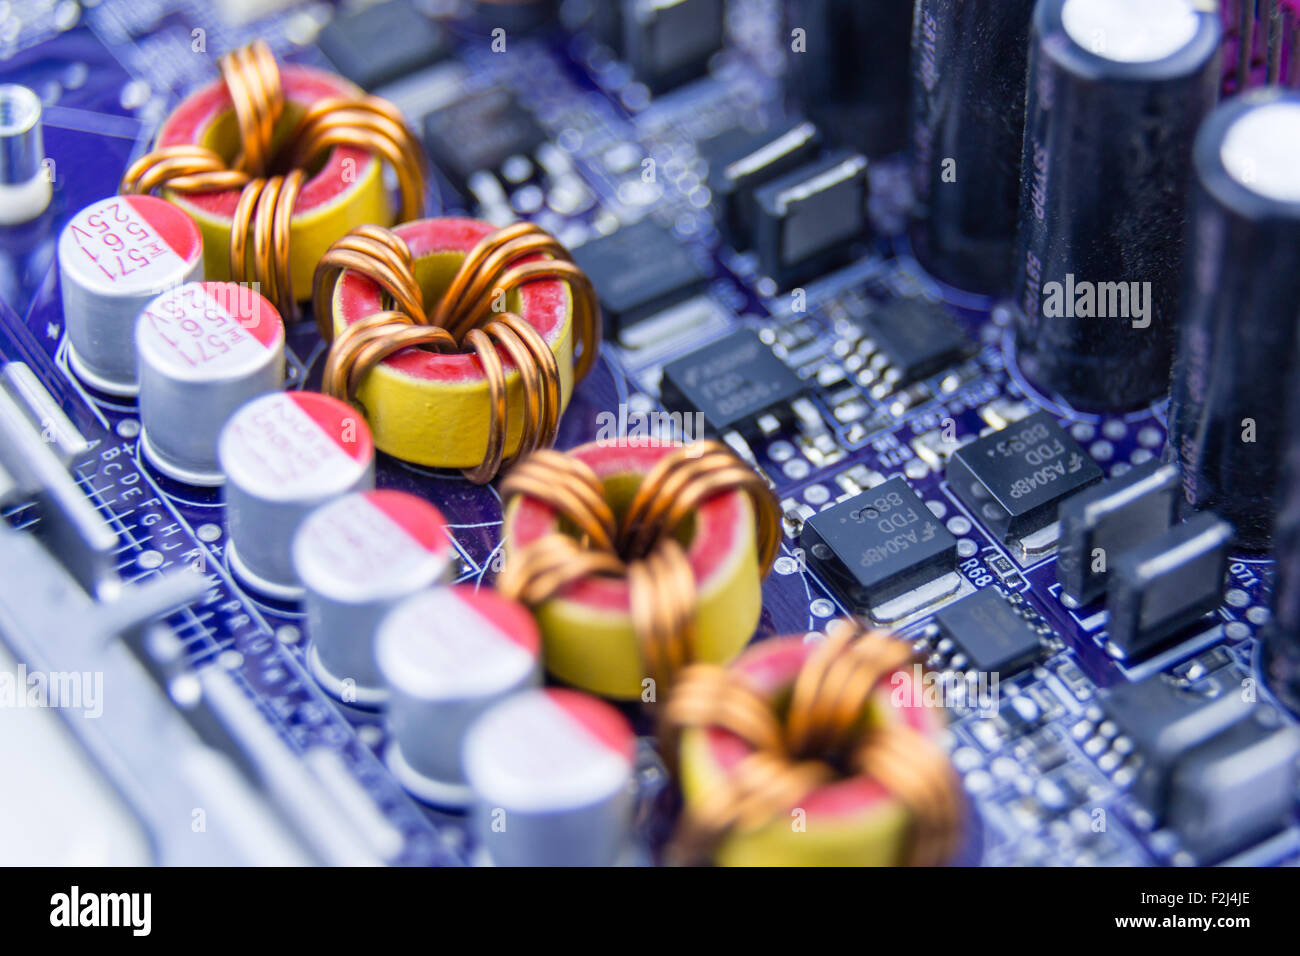 Macro close-up of compoments on a computer's motherboard - Stock Image